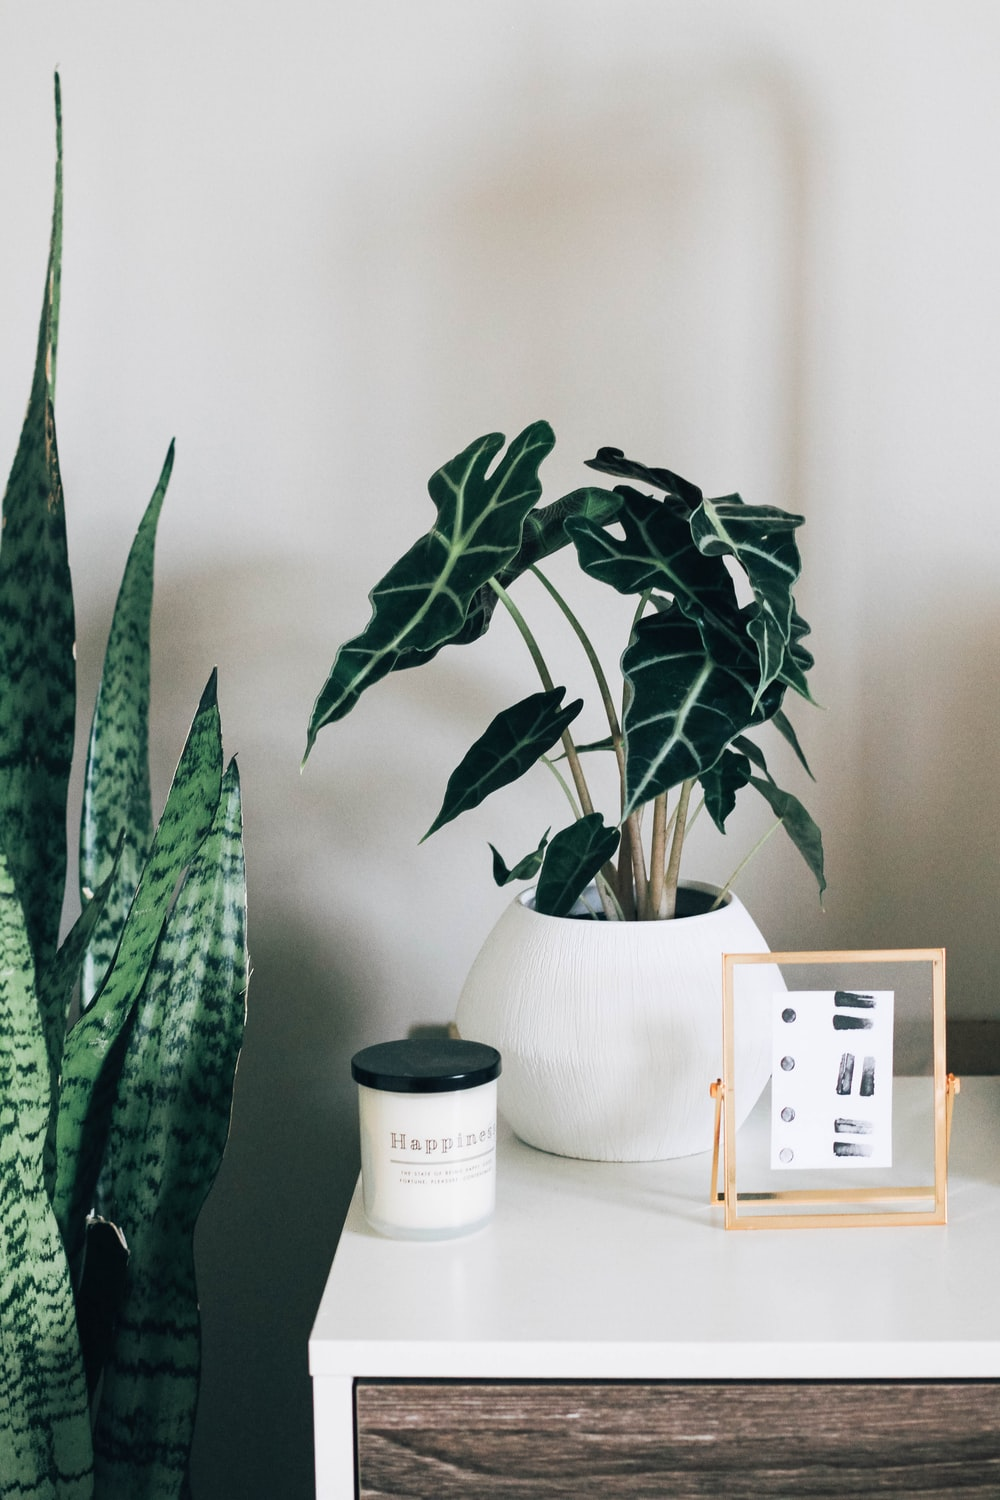 green indoor plant with white pot on white and brown wooden table